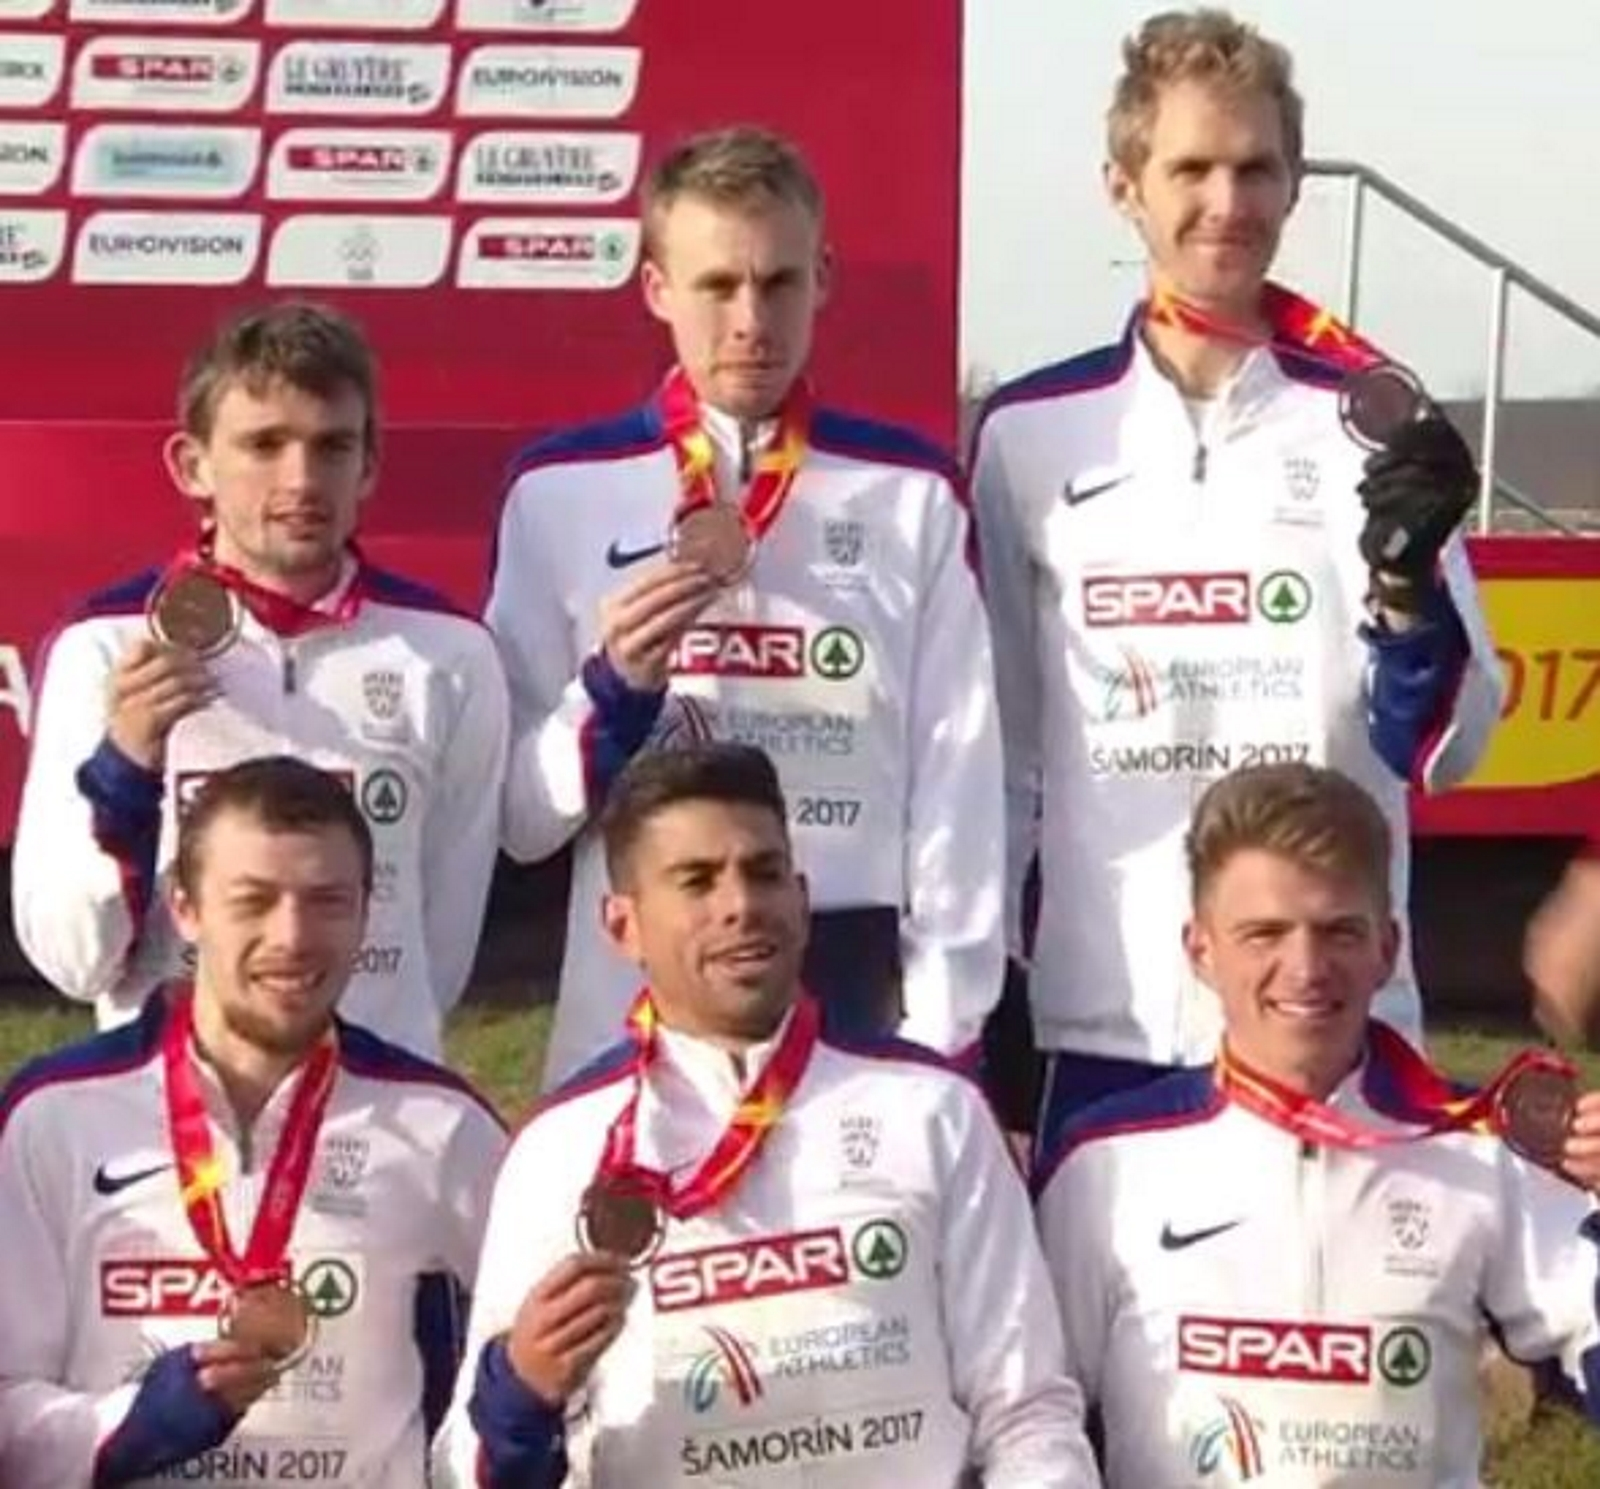 PODIUM: Tom Lancashire, front, centre, shows off his bronze medal with the Great Britain and Northern Ireland team at the European Cross Country Championships in Slovakia